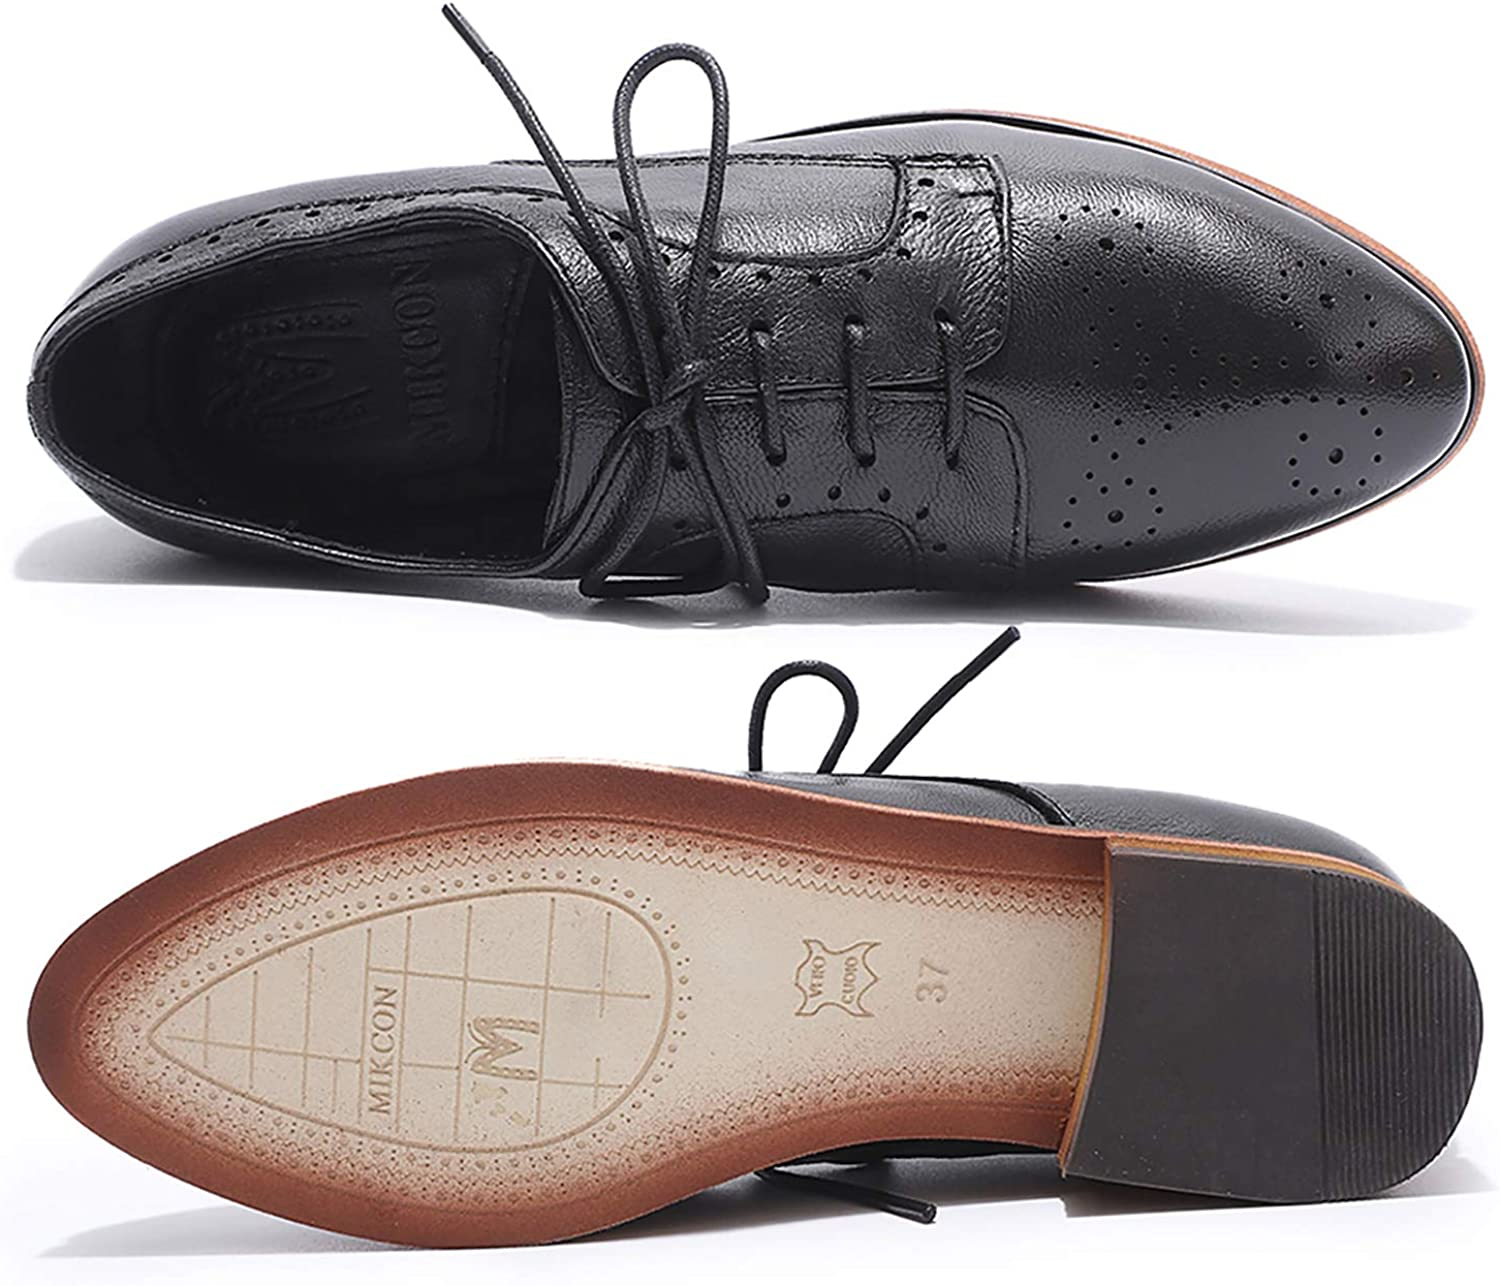 MIKCON Womens Leather Lace up Oxfords Wingtip Brogue Flats Saddle Shoes for Girls